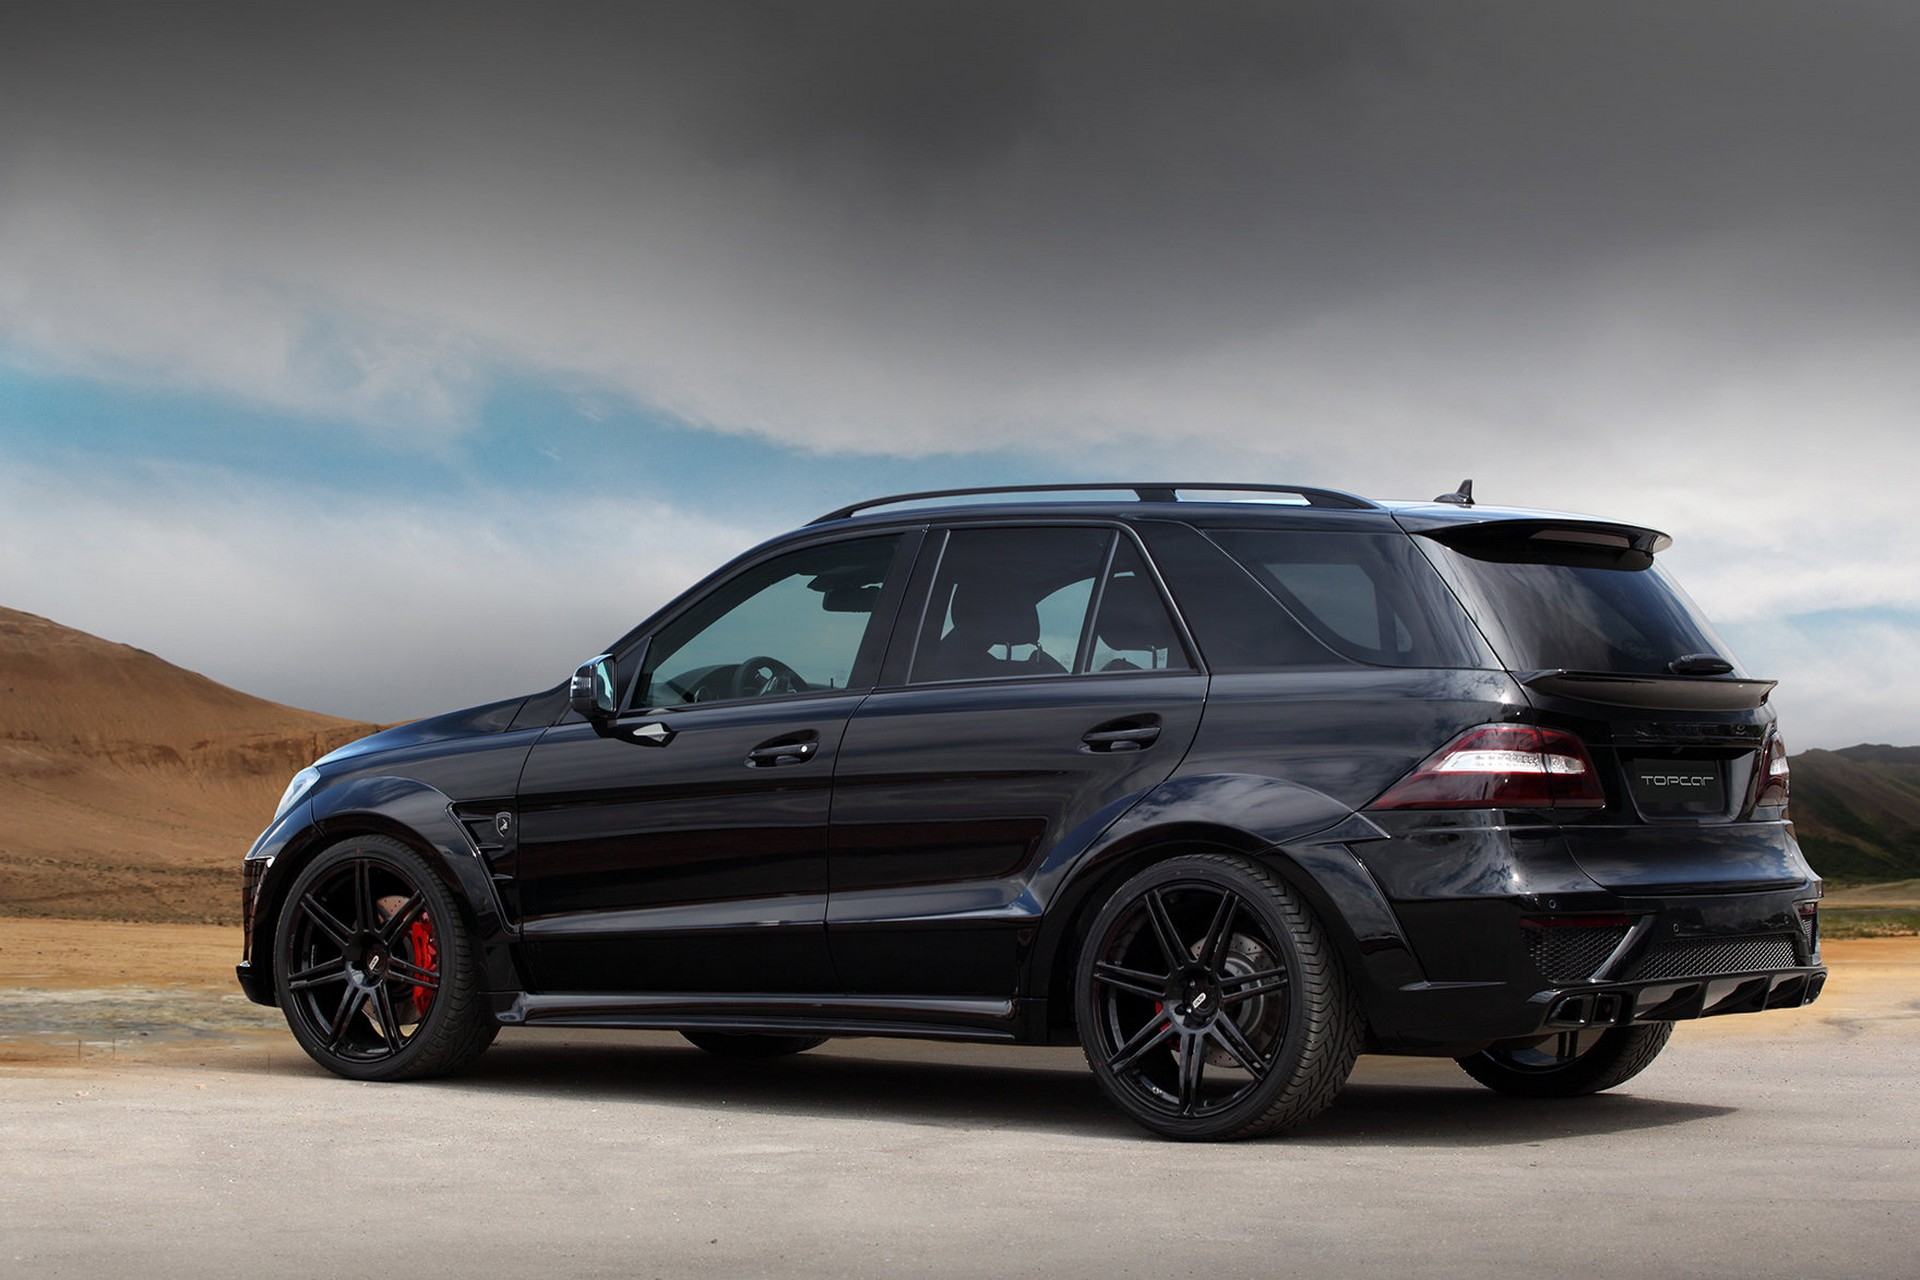 Mercedes benz ml 6 3 amg inferno black topcar for Ml mercedes benz